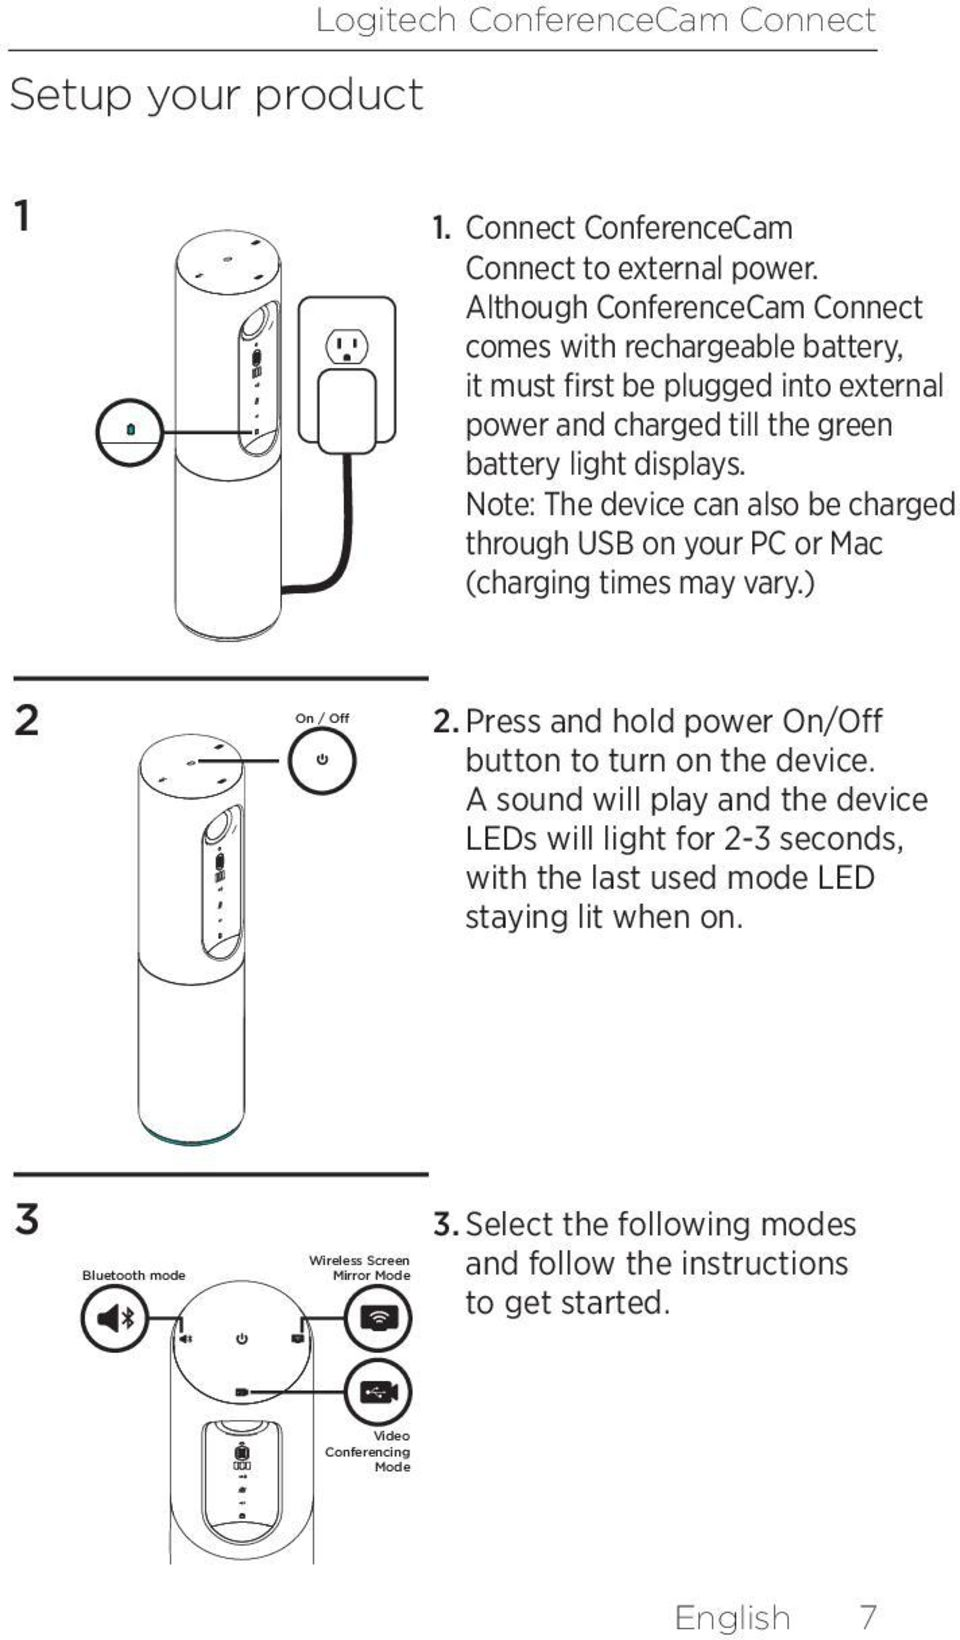 Note: The device can also be charged through USB on your PC or Mac (charging times may vary.) 2 On / Off 2. Press and hold power On/Off button to turn on the device.